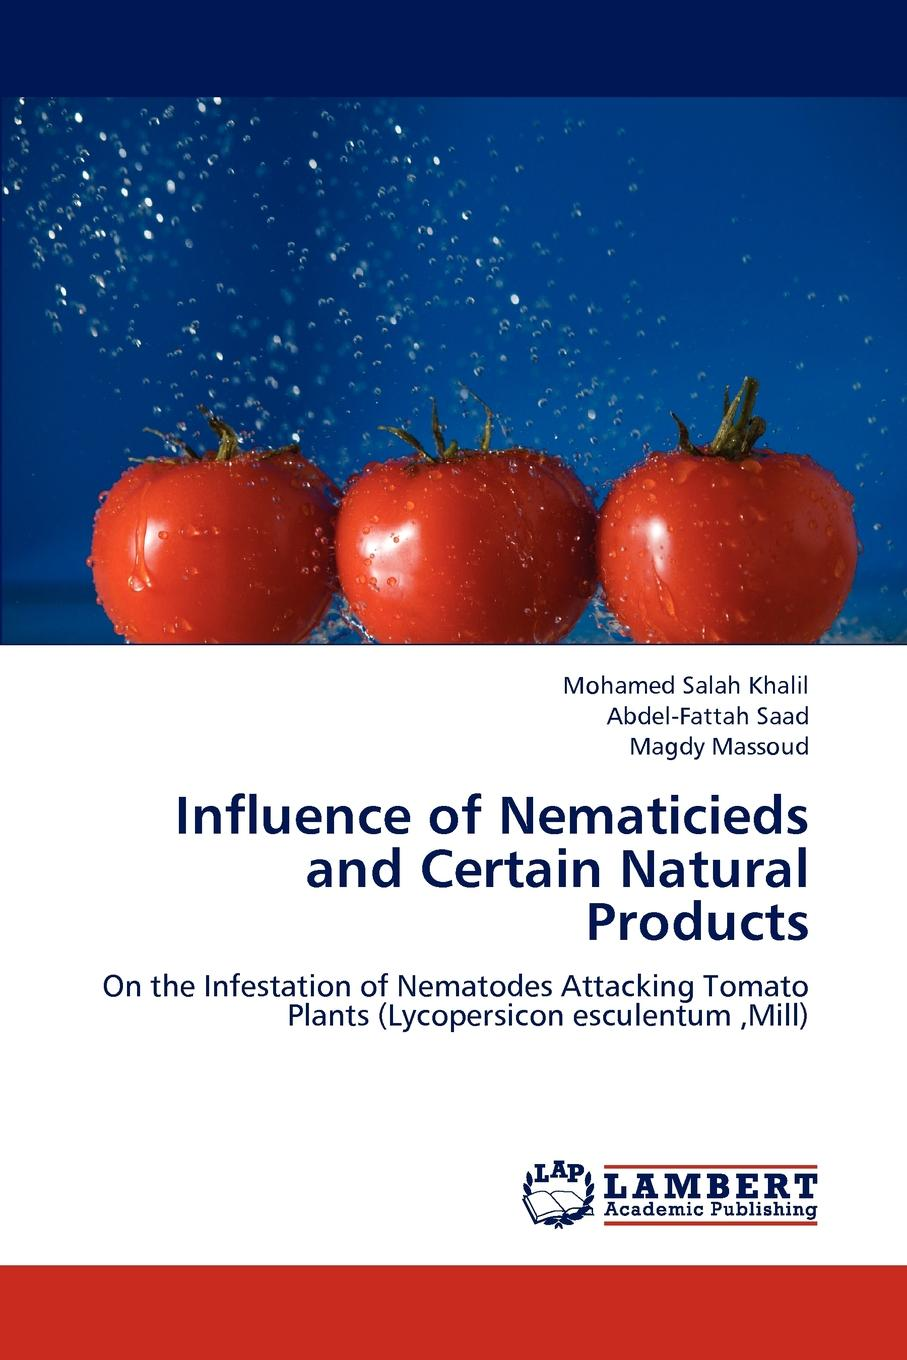 Mohamed Salah Khalil, Abdel-Fattah Saad, Magdy Massoud Influence of Nematicieds and Certain Natural Products knot front crop top